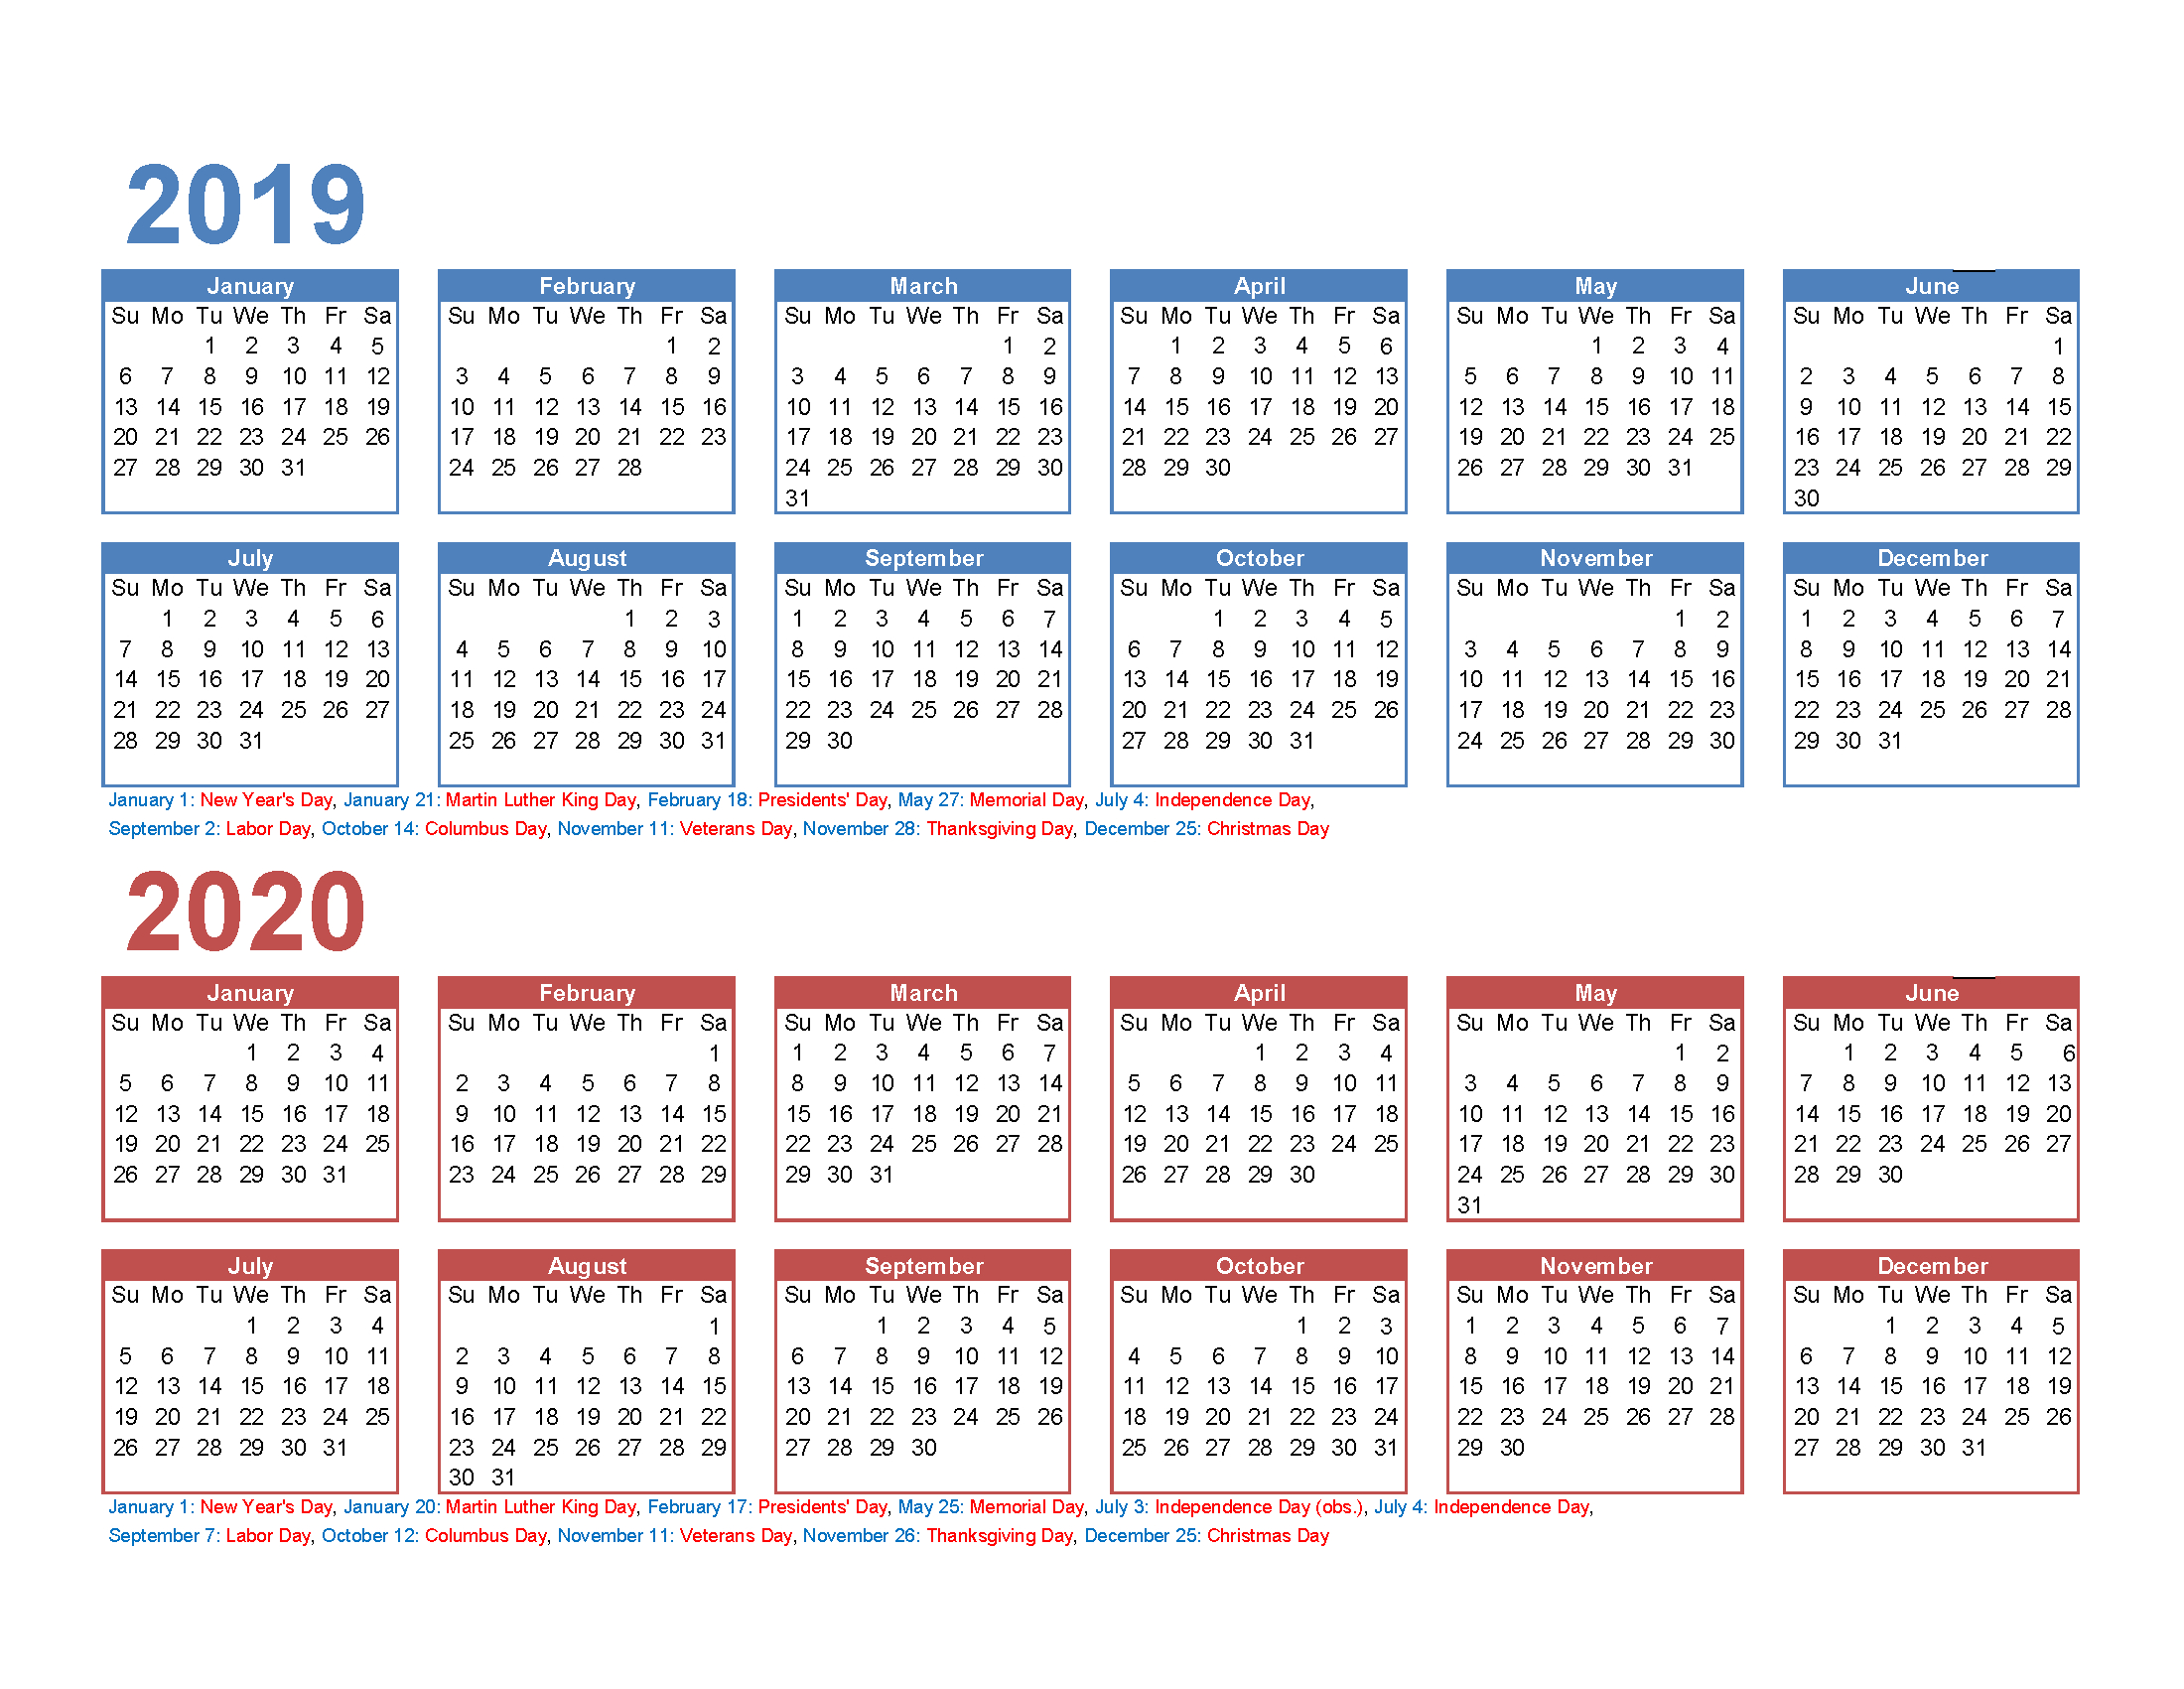 Free 2019 And 2020 Calendar Printable 2 Year Calendar | Free